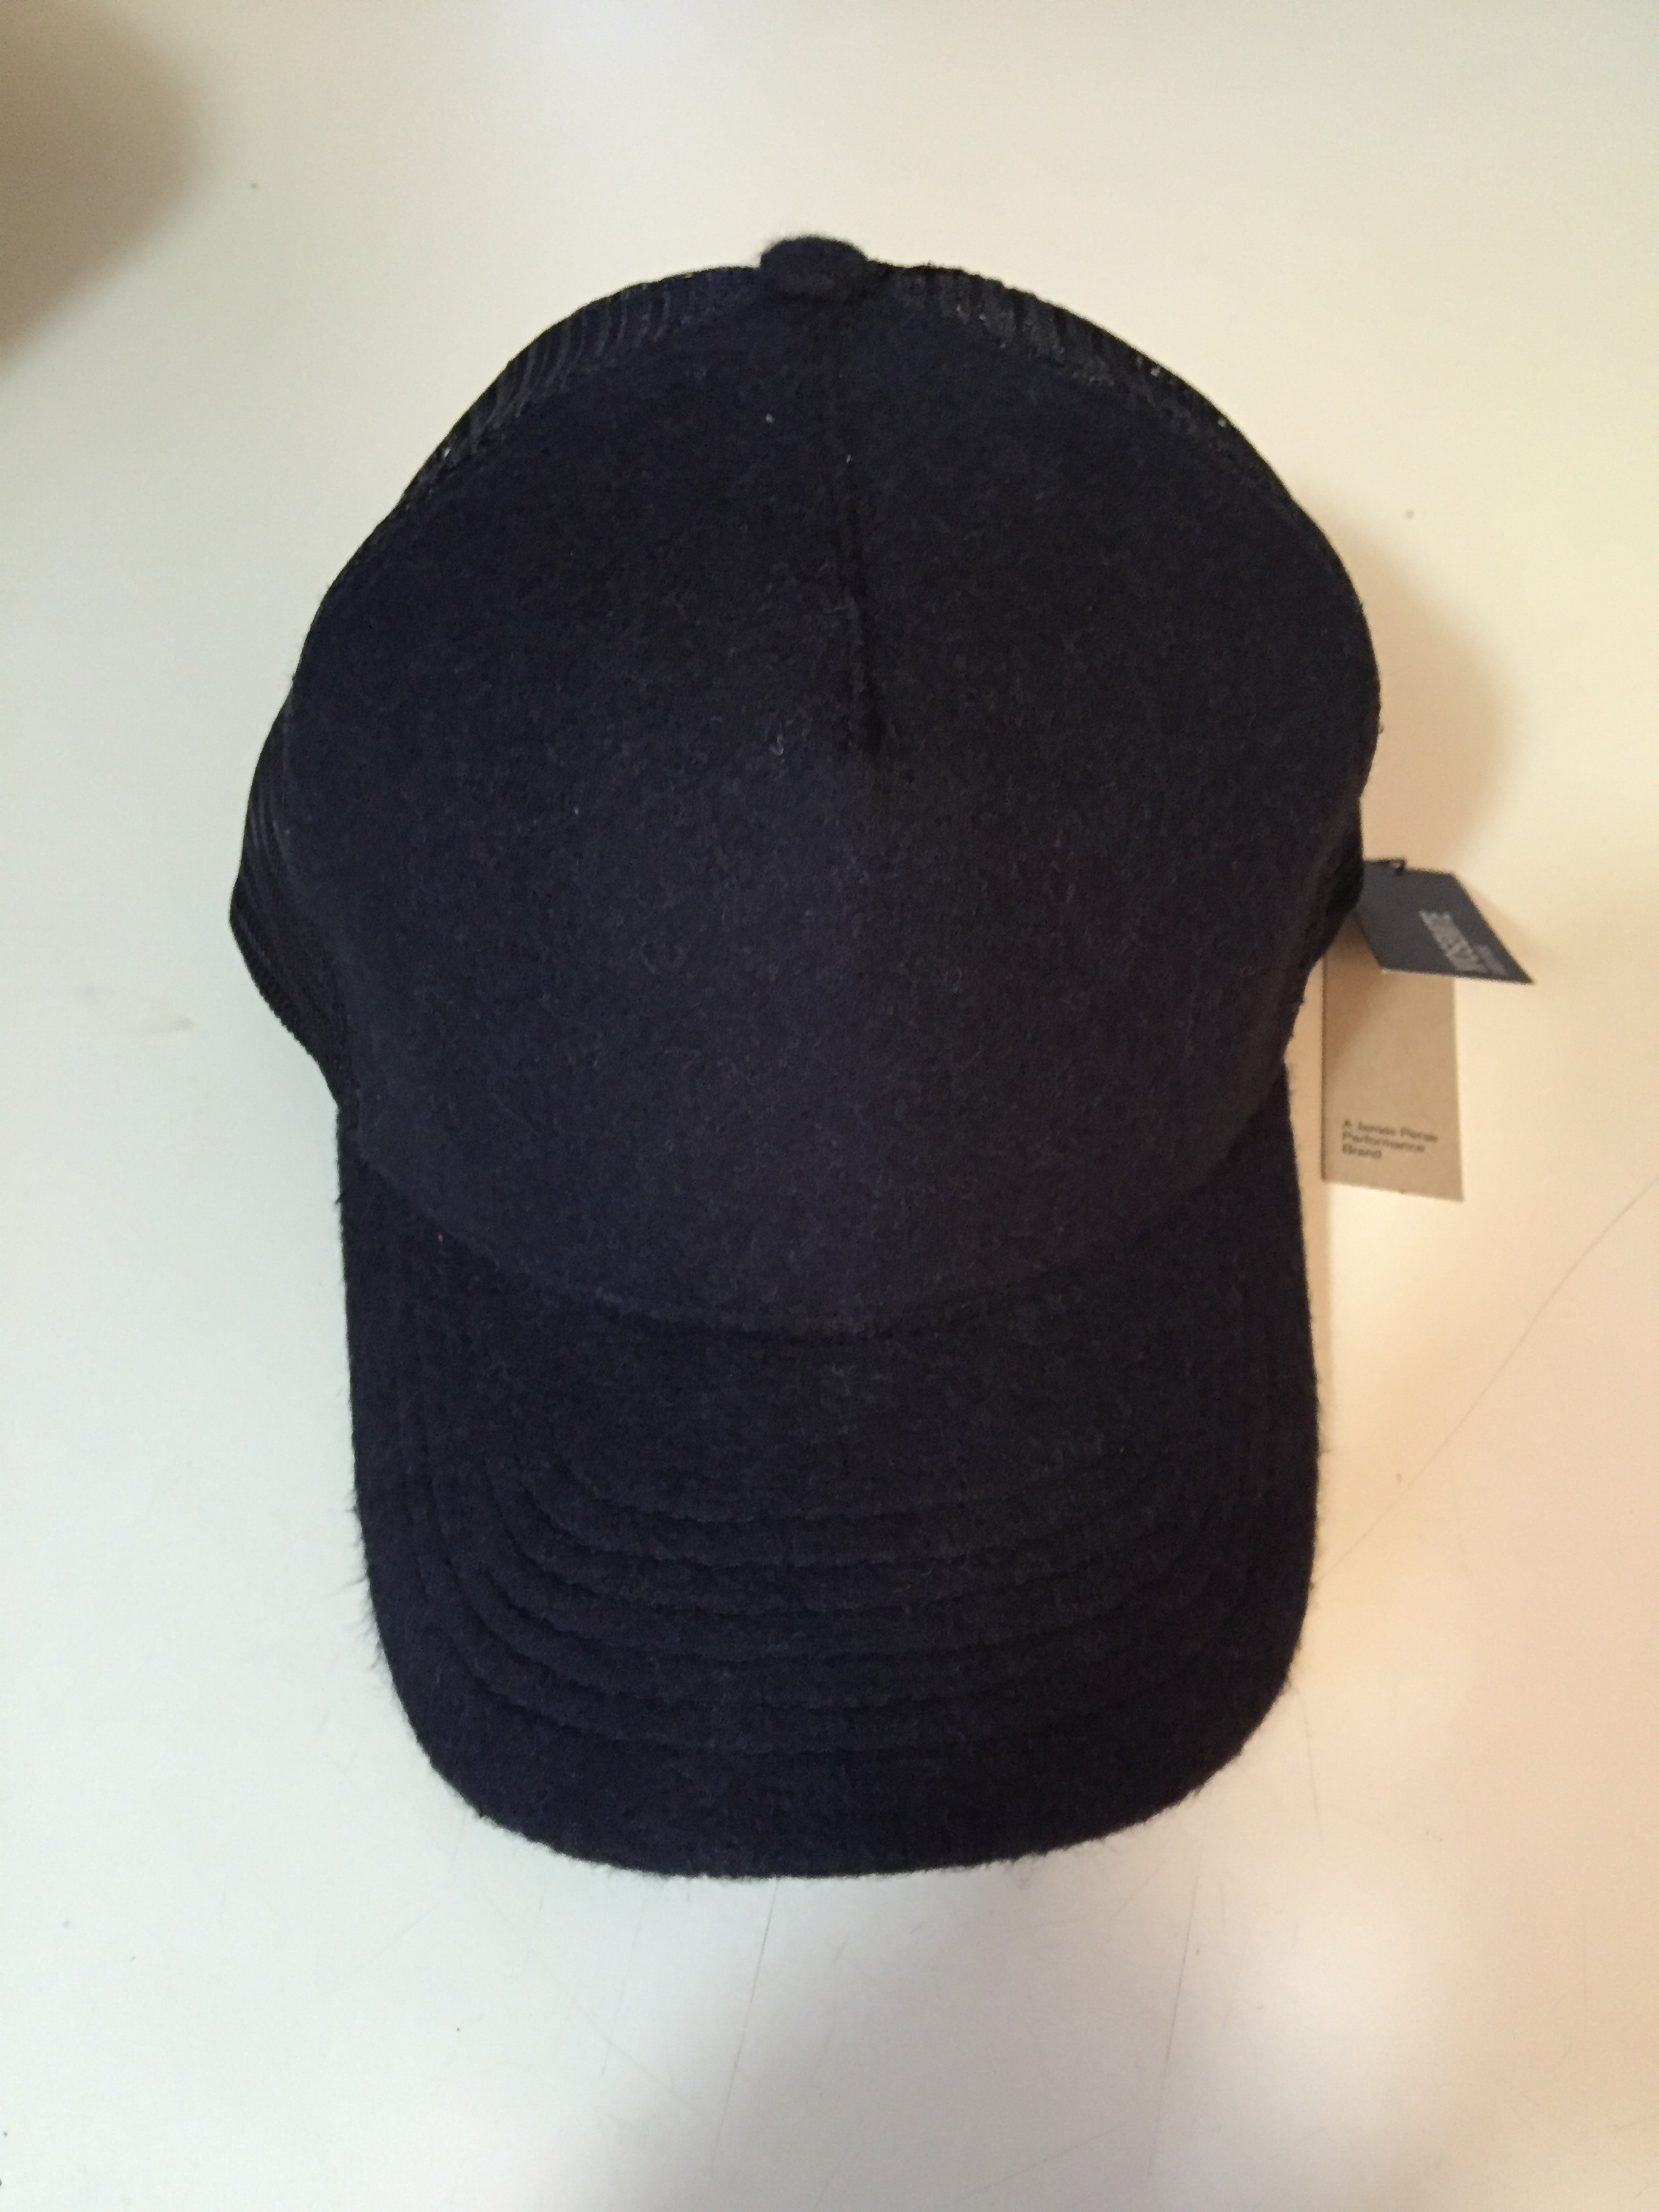 00ab3e5e836 James Perse Double Face Knit Trucker Hat Size one size - Hats for ...